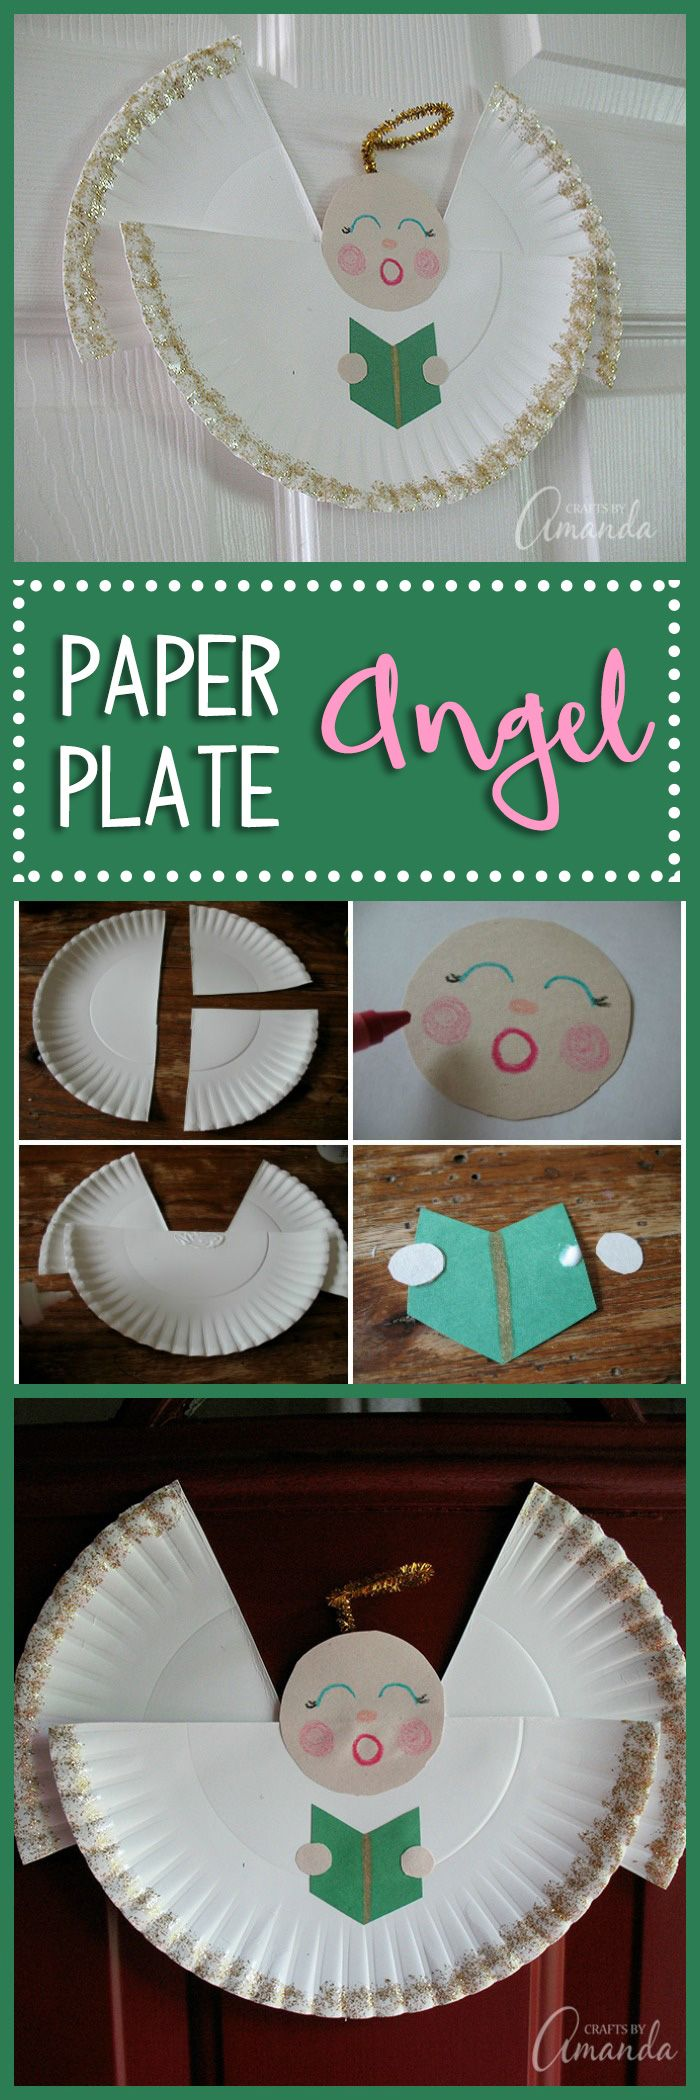 Paper Plate Angel learn how to